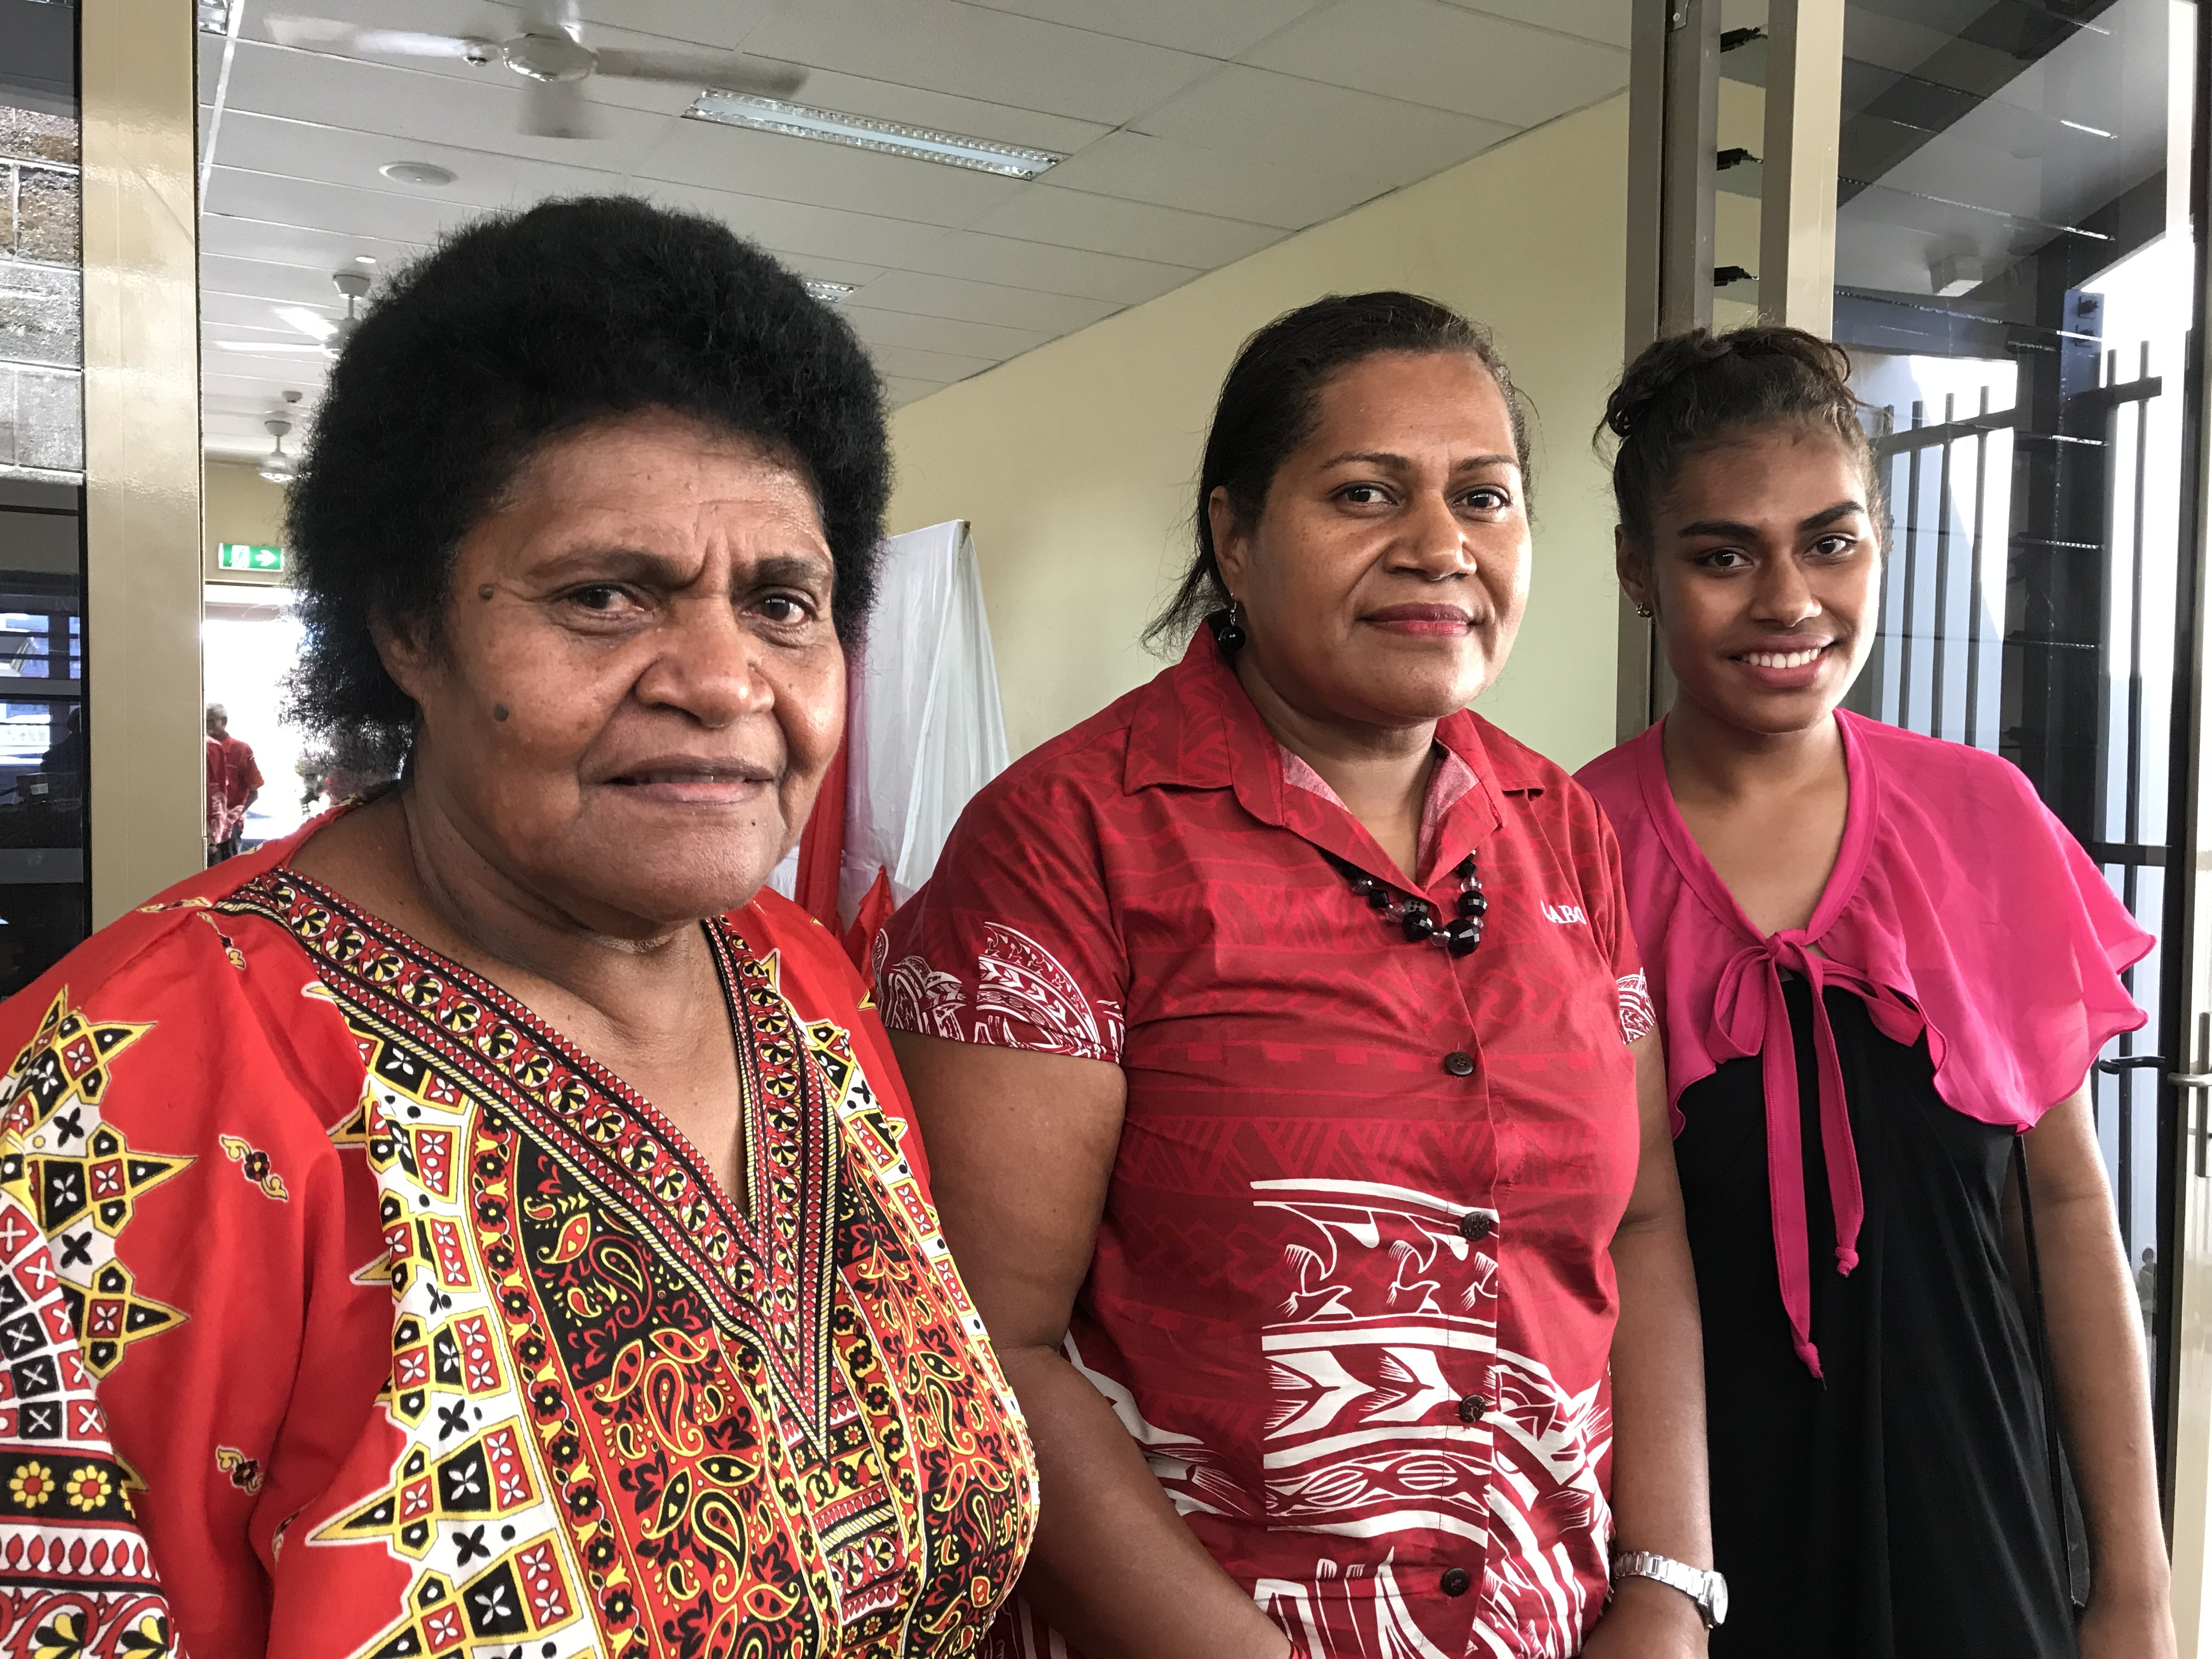 From left, Torika Liku Tobakeisuva (mother), Fiji Labour Party provisional candidate Taina Rokotabua and Litia Lynell Lewairavu (daughter). Photo: Rosi Doviverata